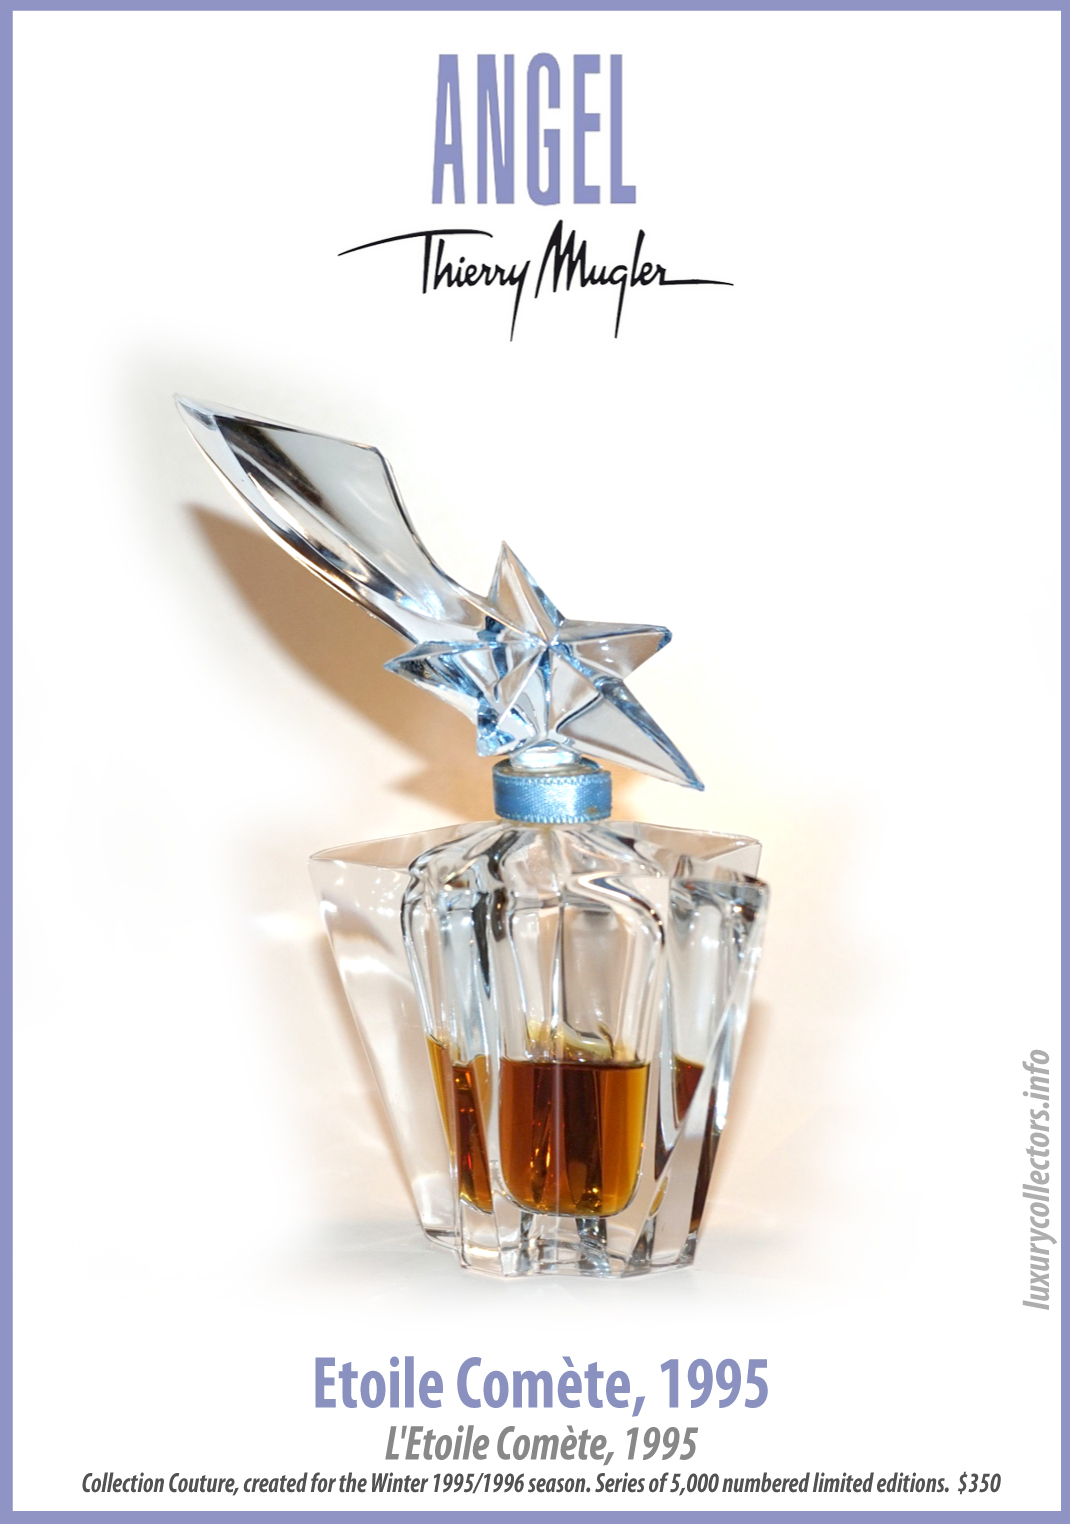 Thierry Mugler Perfume Bottle for 1995 Angel Comete Star